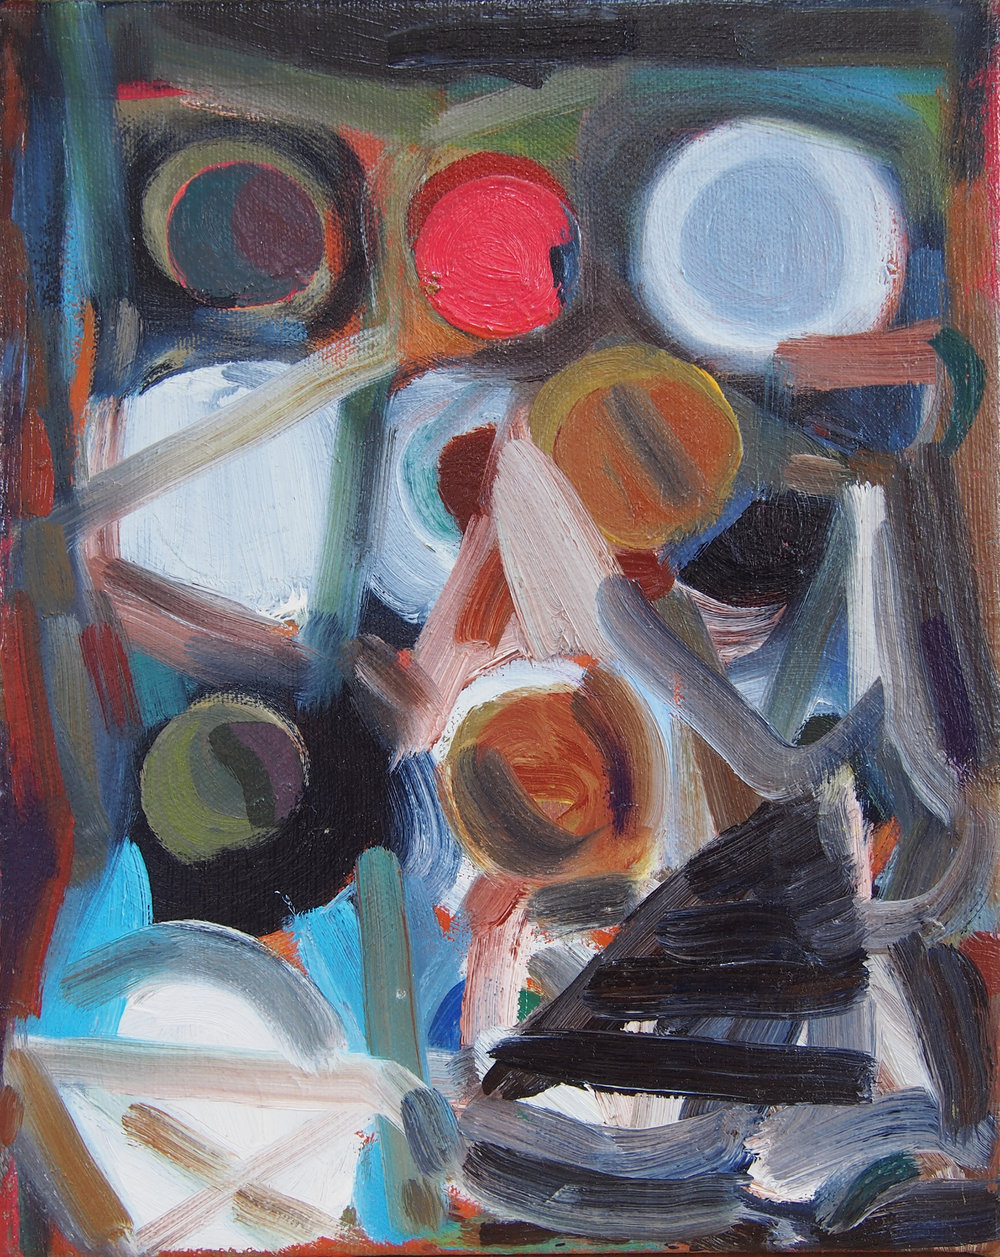 Mark Jeffreys - Untitled Dream - 2015 - oil on canvas - 30x20cm.jpg